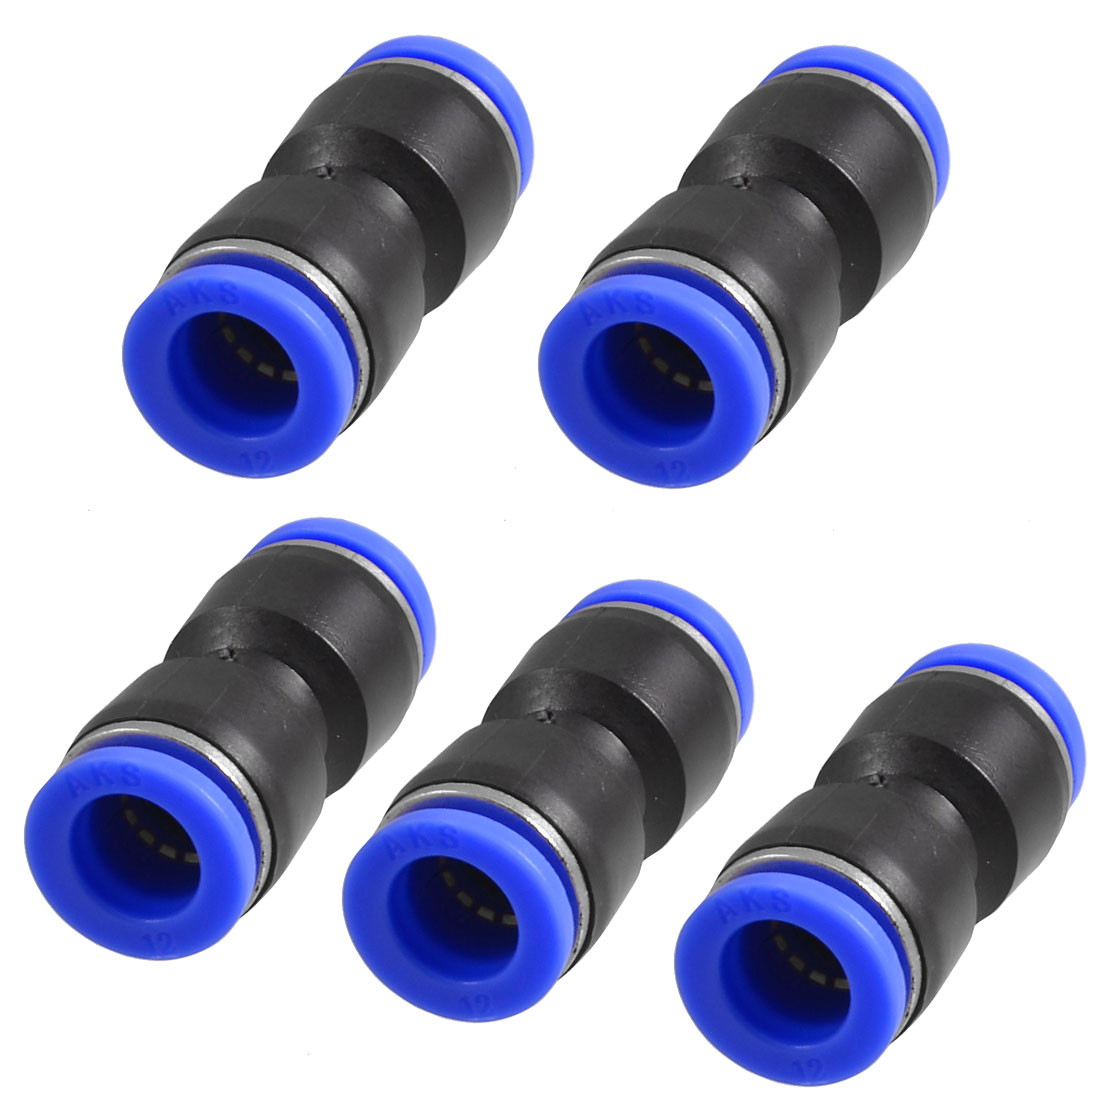 5 x Air Pneumatic 12mm to 12mm Straight  in Connectors Quick Fittings Cykfz